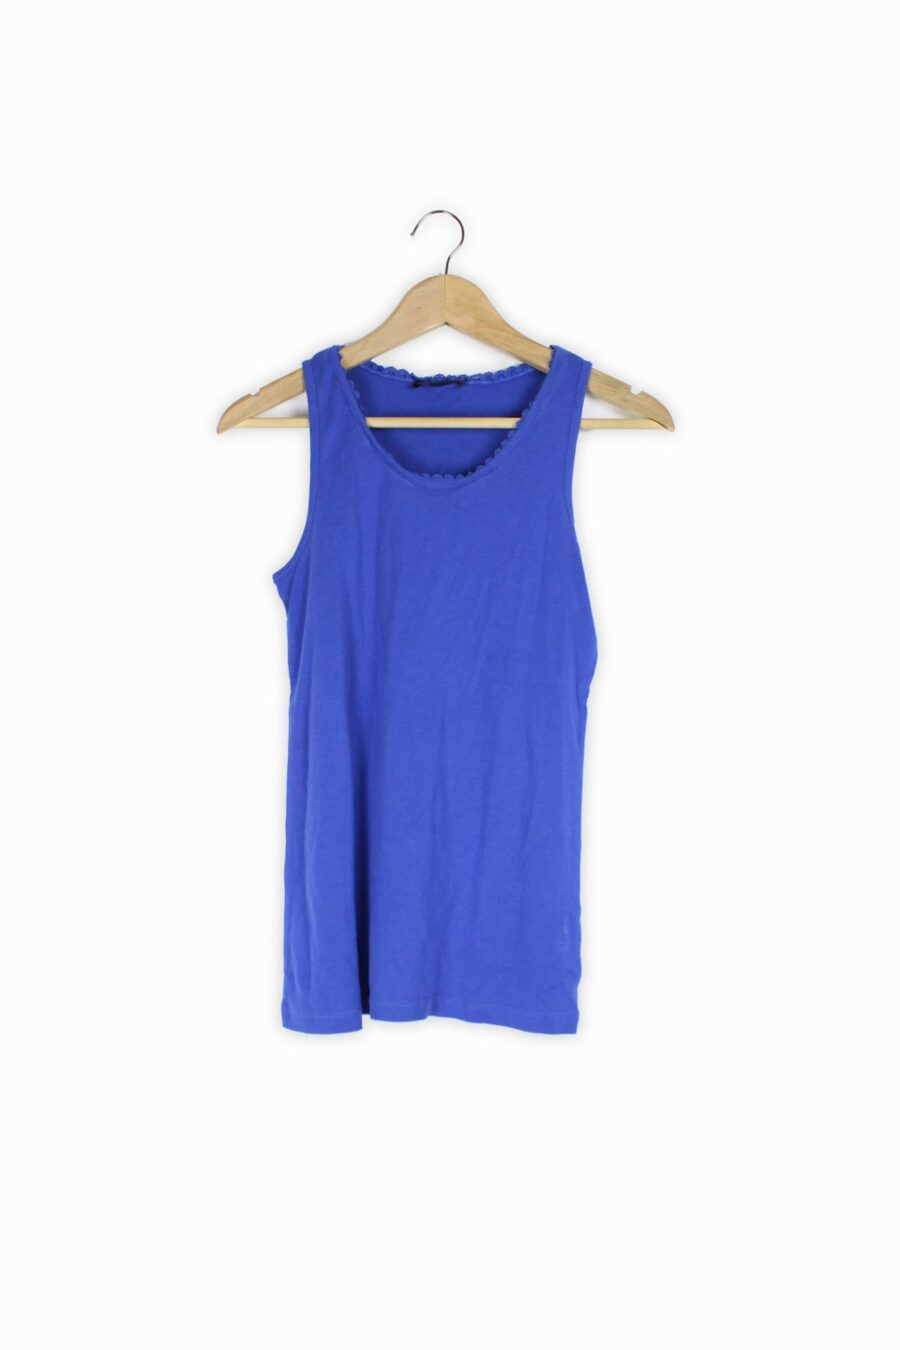 Second Hand Clothes Pre-Owned Clothing   Oafo